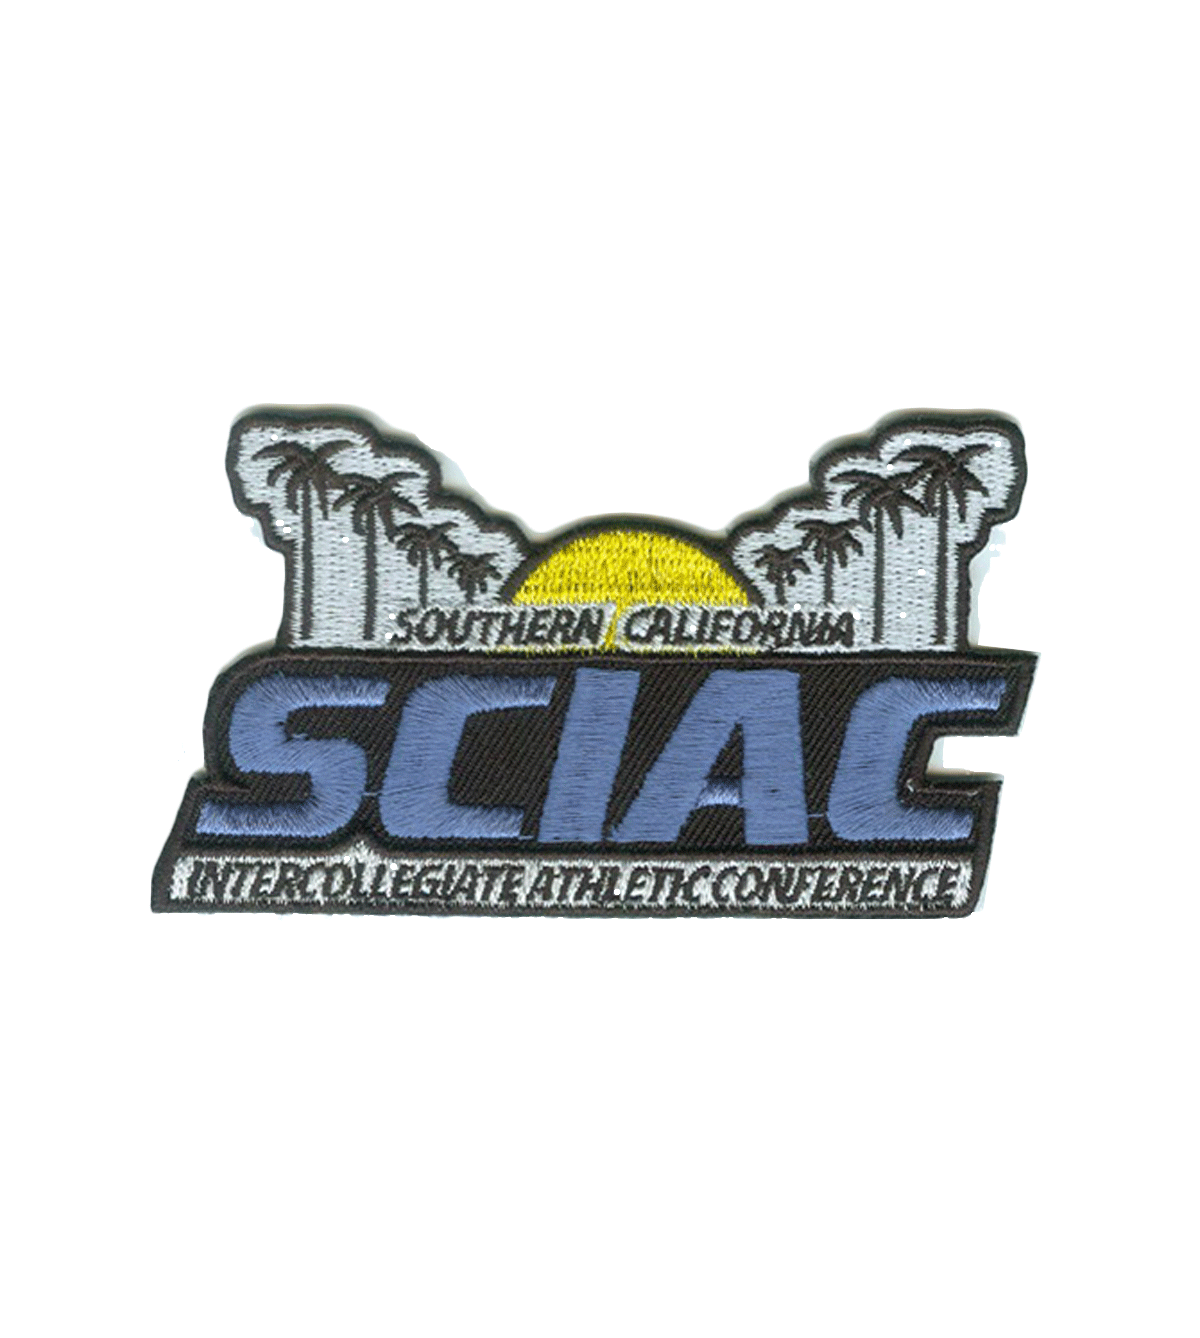 SCIAC Conference Patch